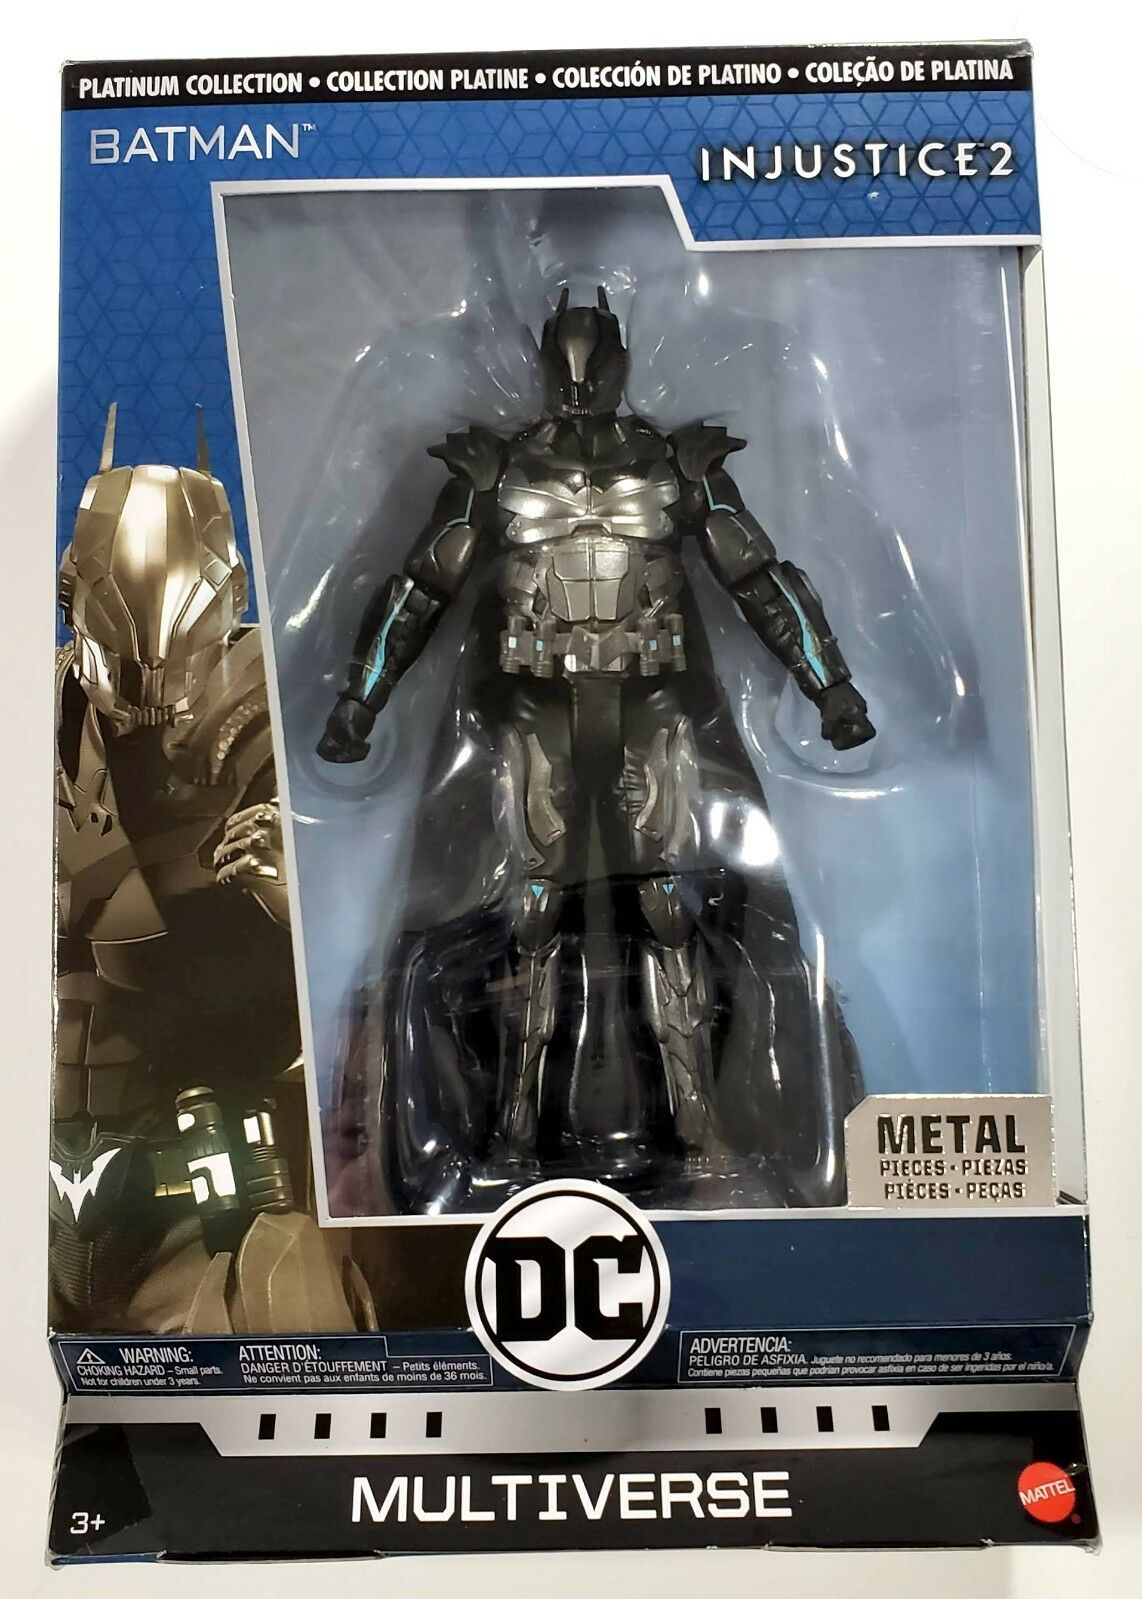 DC Multiverse Injustice 2 Batman Action Figure with Stand Platinum Collection